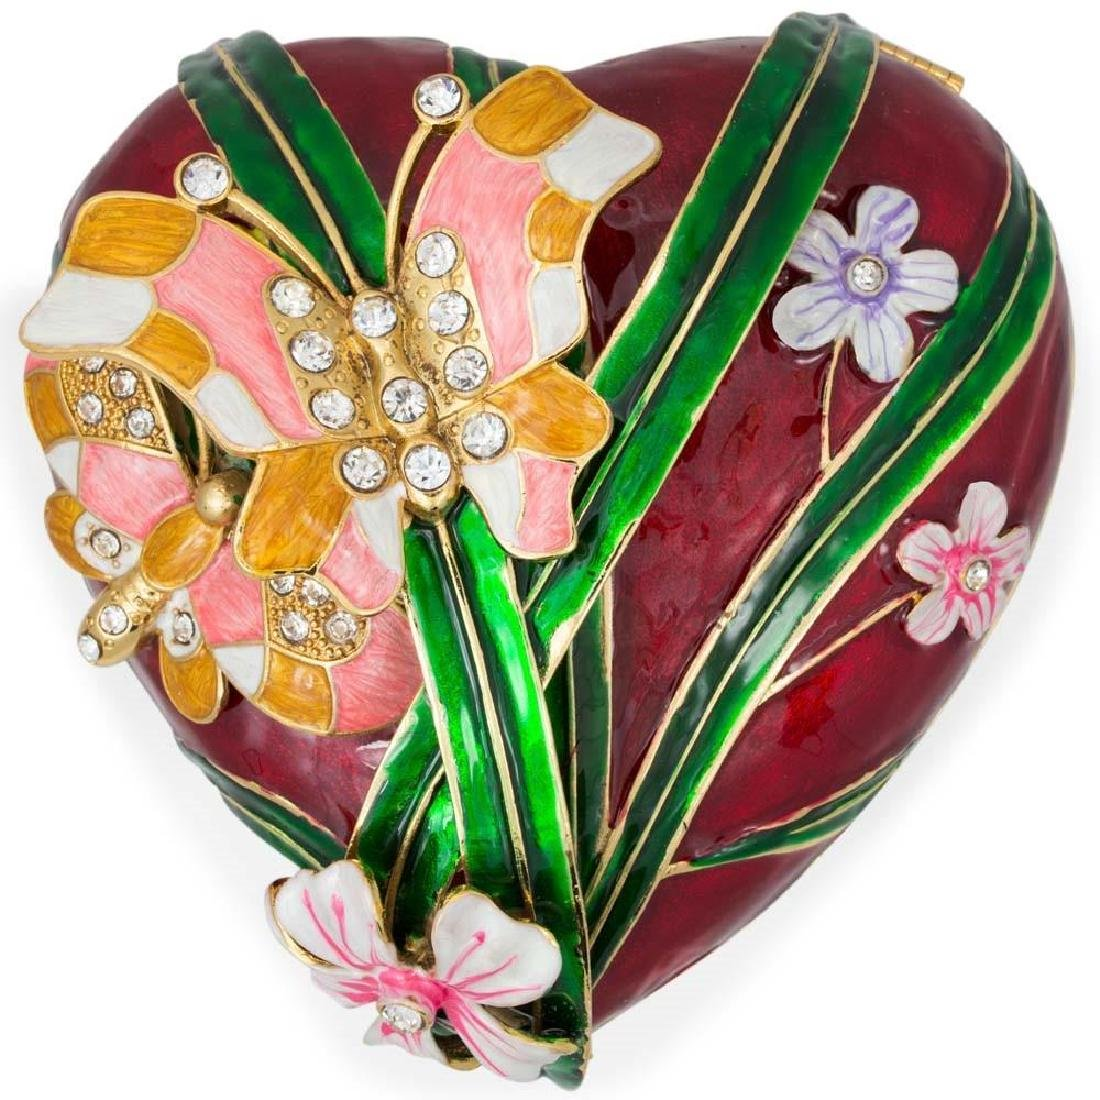 "Faberge Inspired 6.5"" Valentine's Love Heart with - 5"